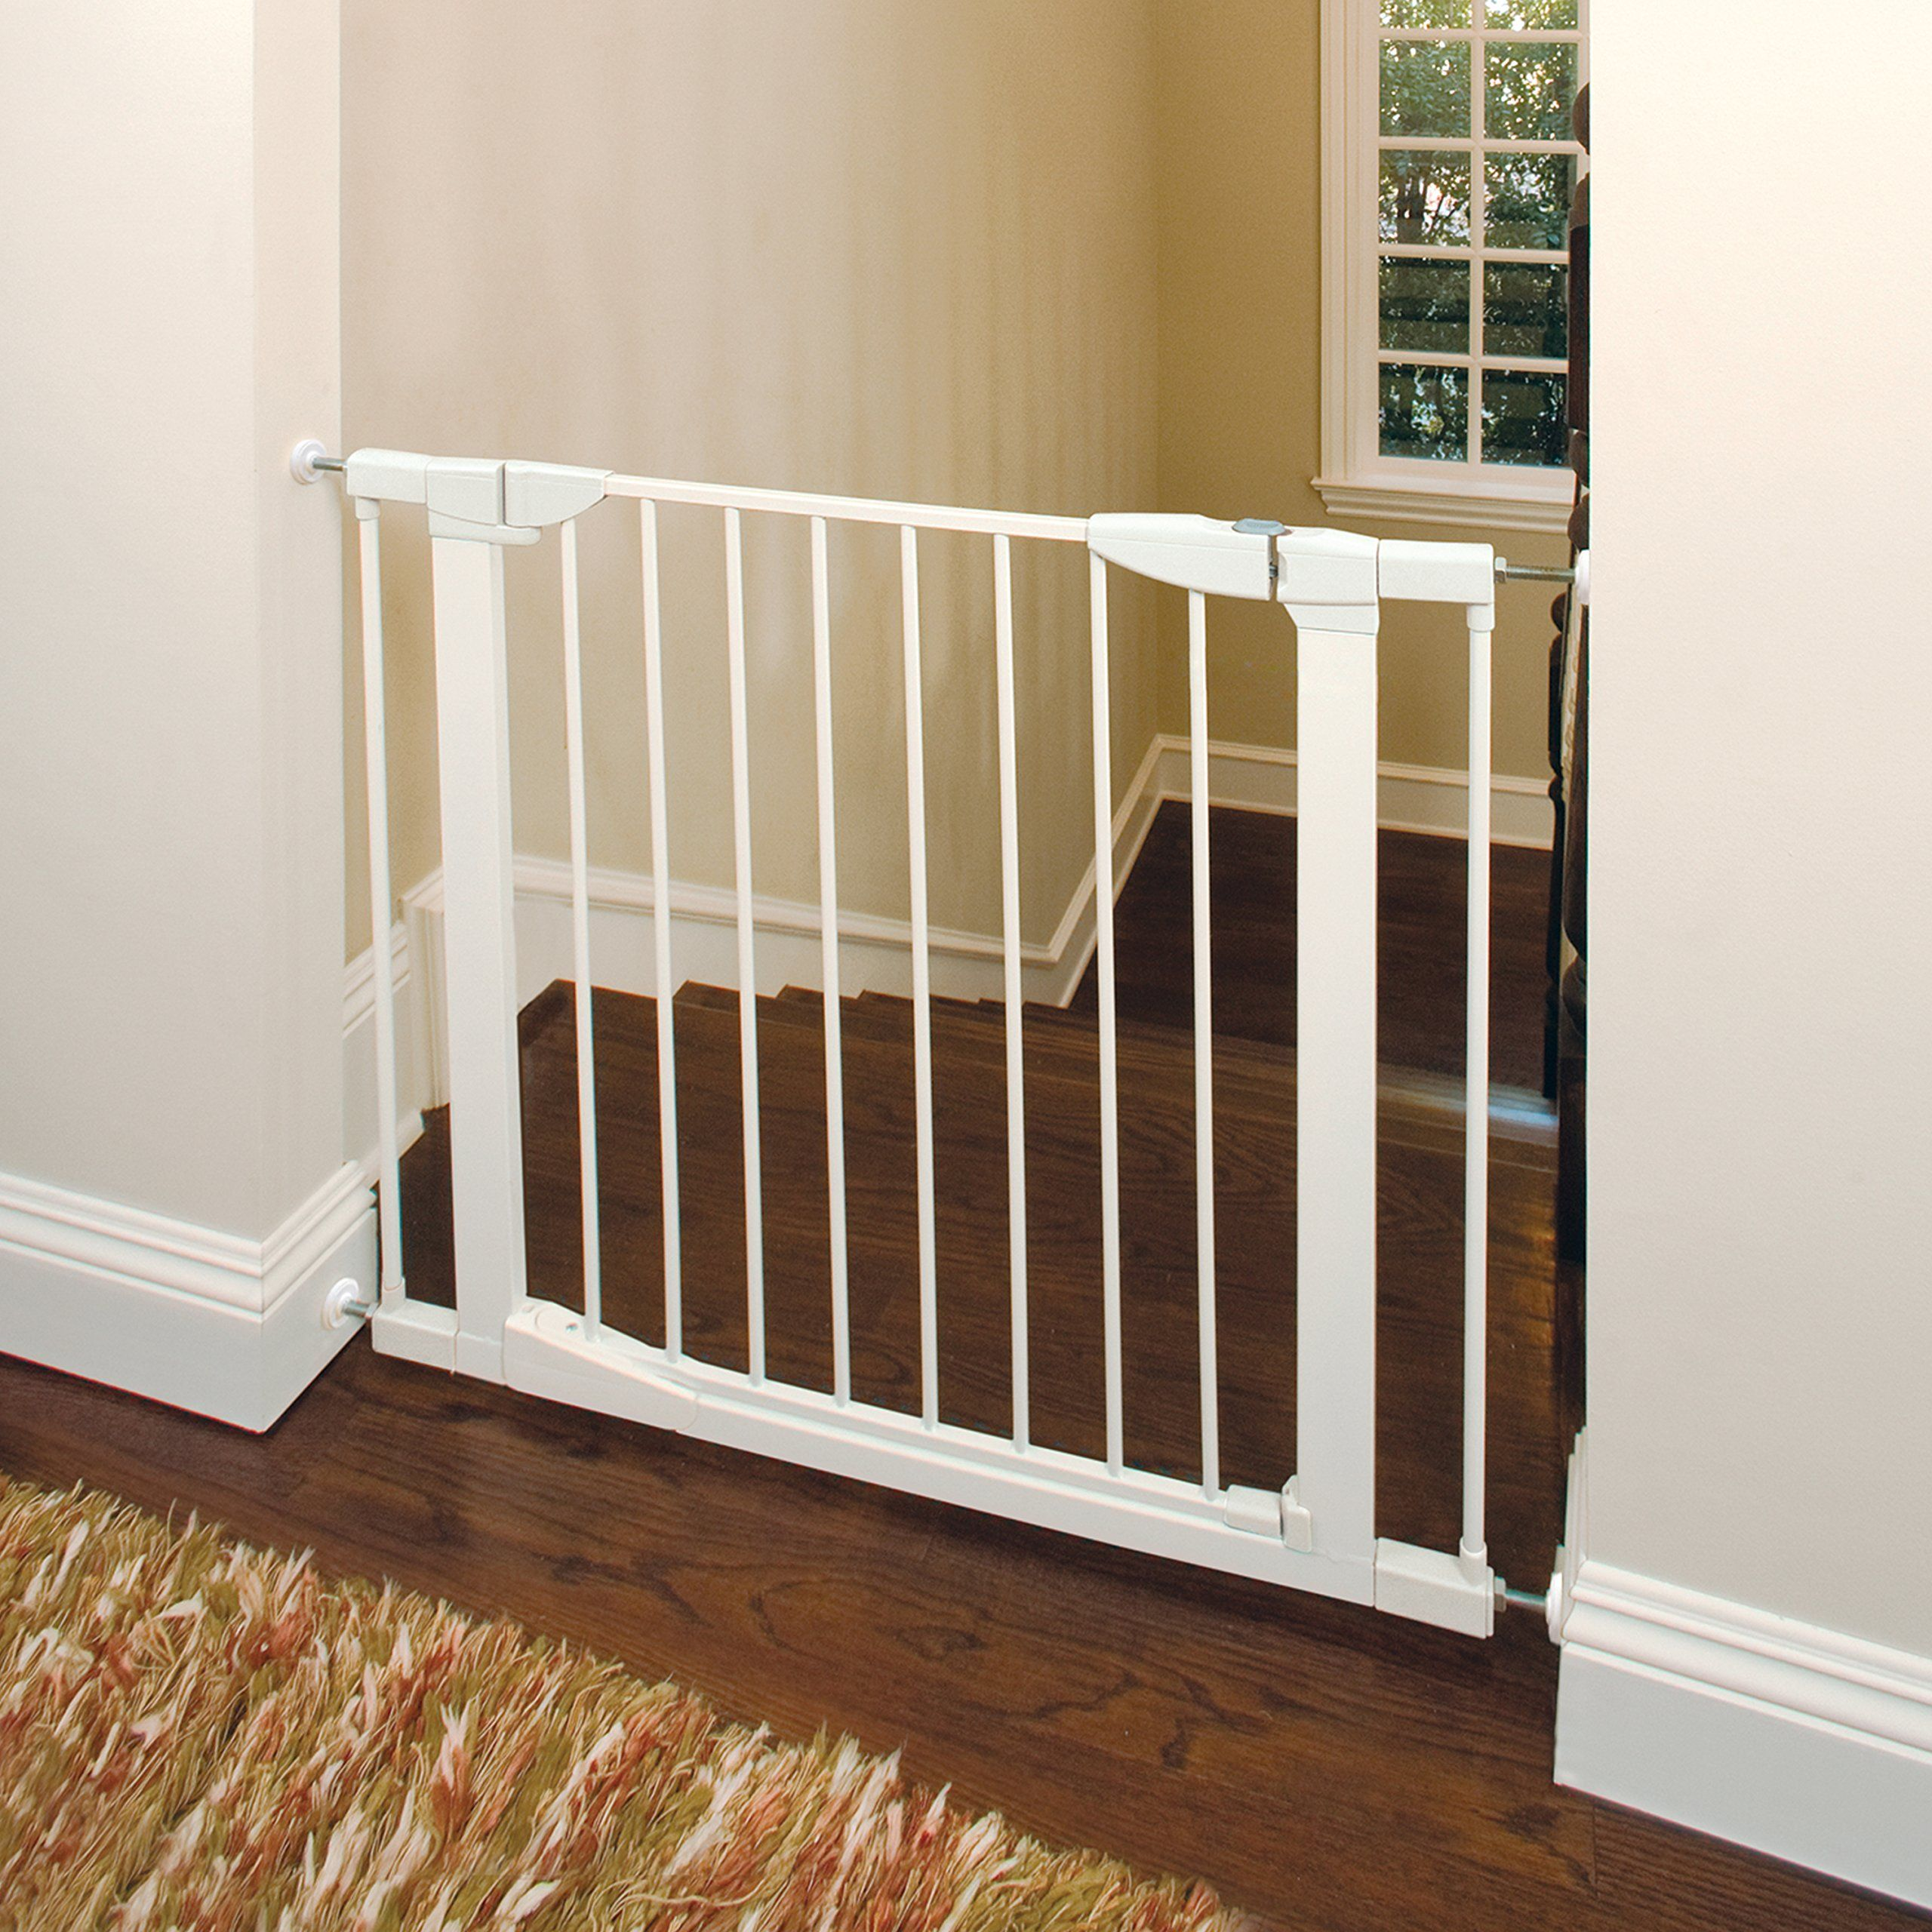 Munchkin Auto Close Pressure Mount Baby Gate For Stairs Hallways And Doors Metal White Model Mk0006022 For More Infor Baby Gates Baby Gate For Stairs House